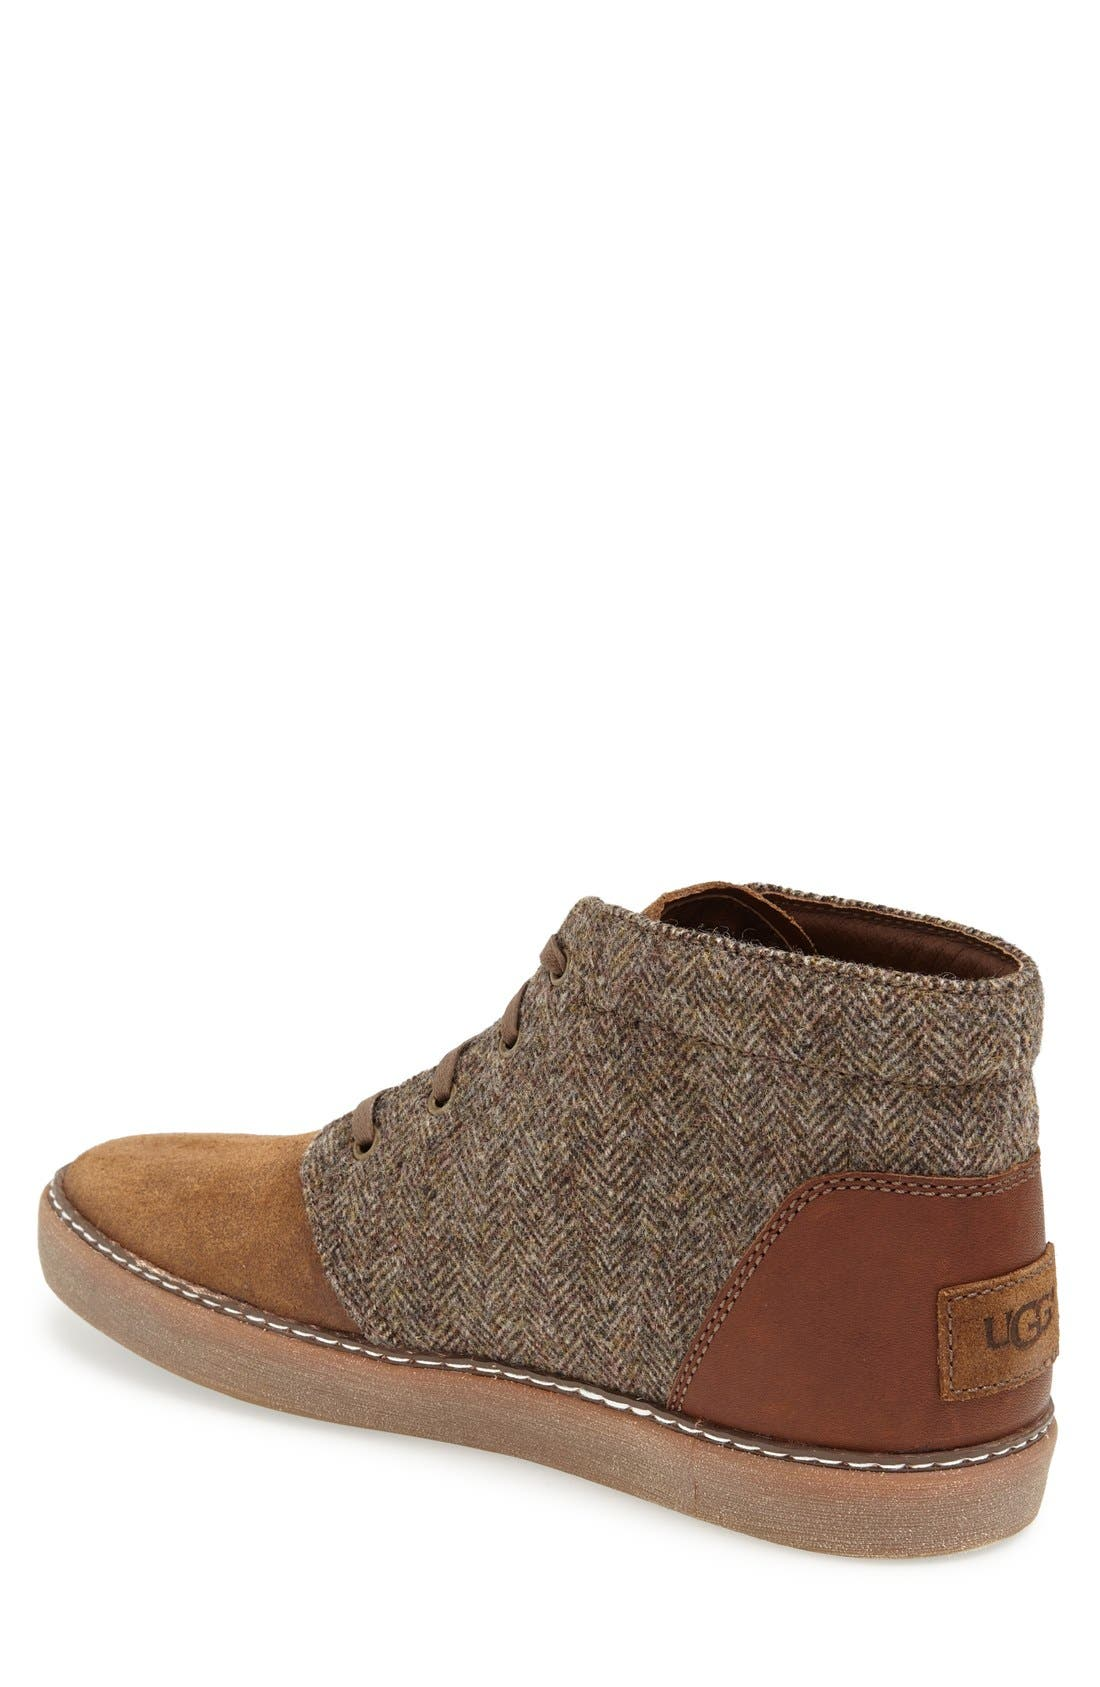 Alternate Image 2  - UGG® 'Alin' Tweed Chukka Boot (Men)